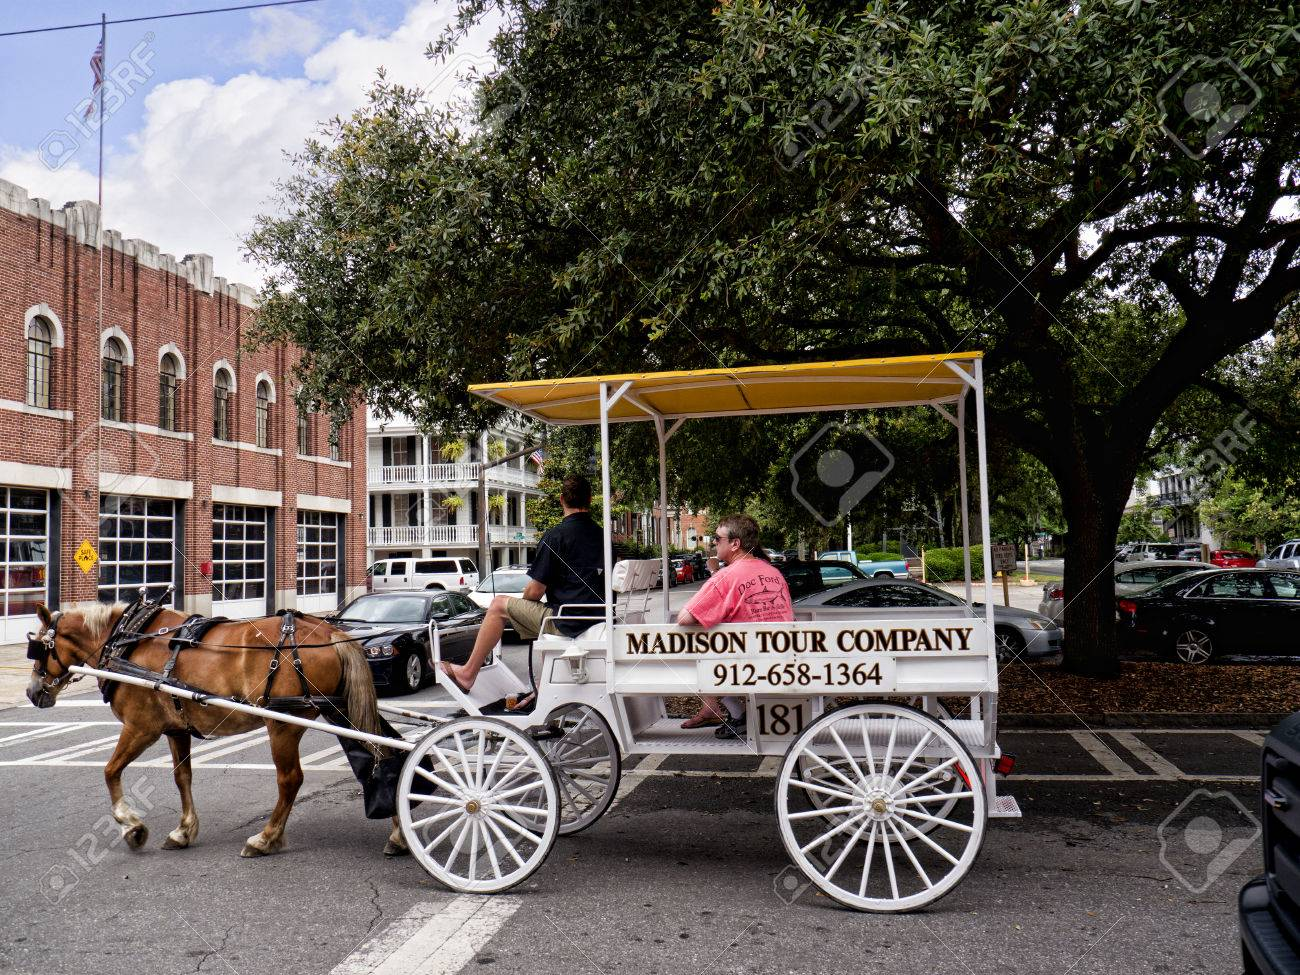 Savannah In Georgia Is Known For Its Manicured Parks Horse Drawn